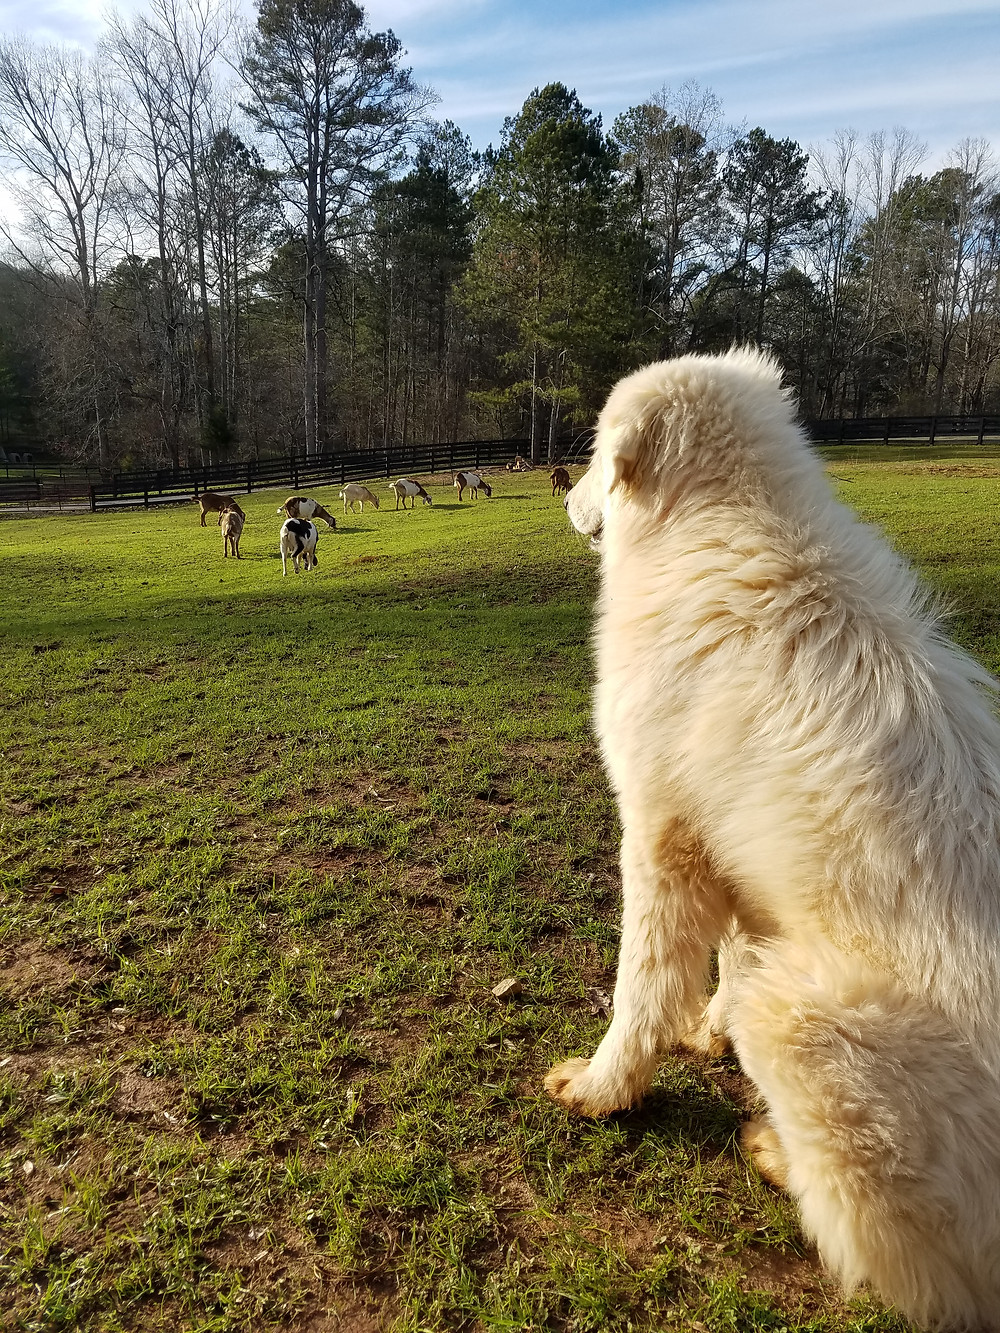 Evelina, the longer-bodied, longer-haired Pastore Abruzzese, watching our goat herd